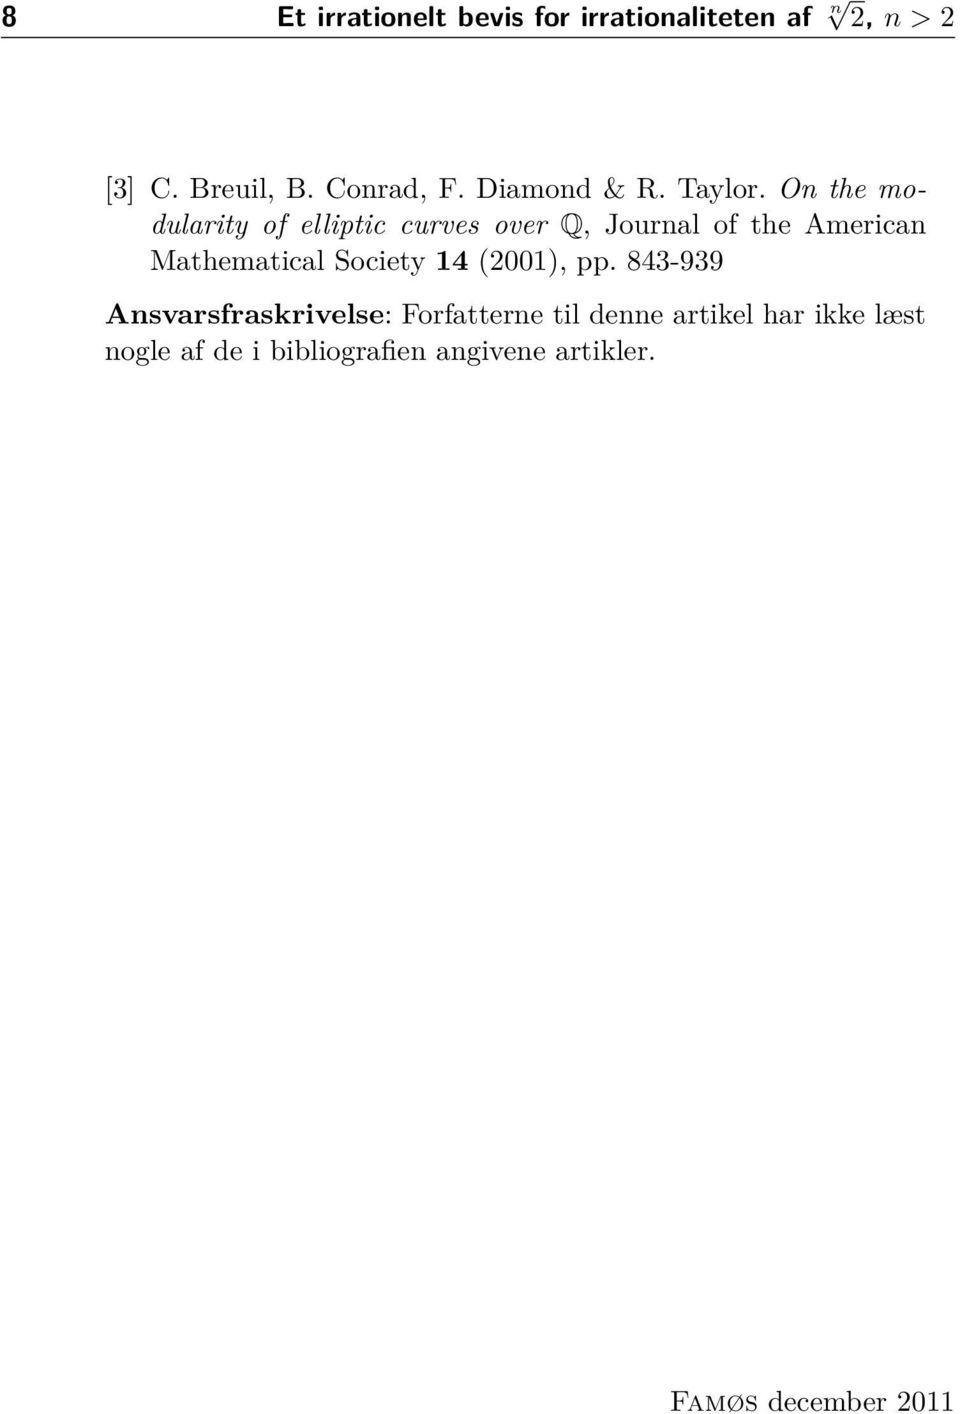 On the modularity of elliptic curves over Q, Journal of the American Mathematical